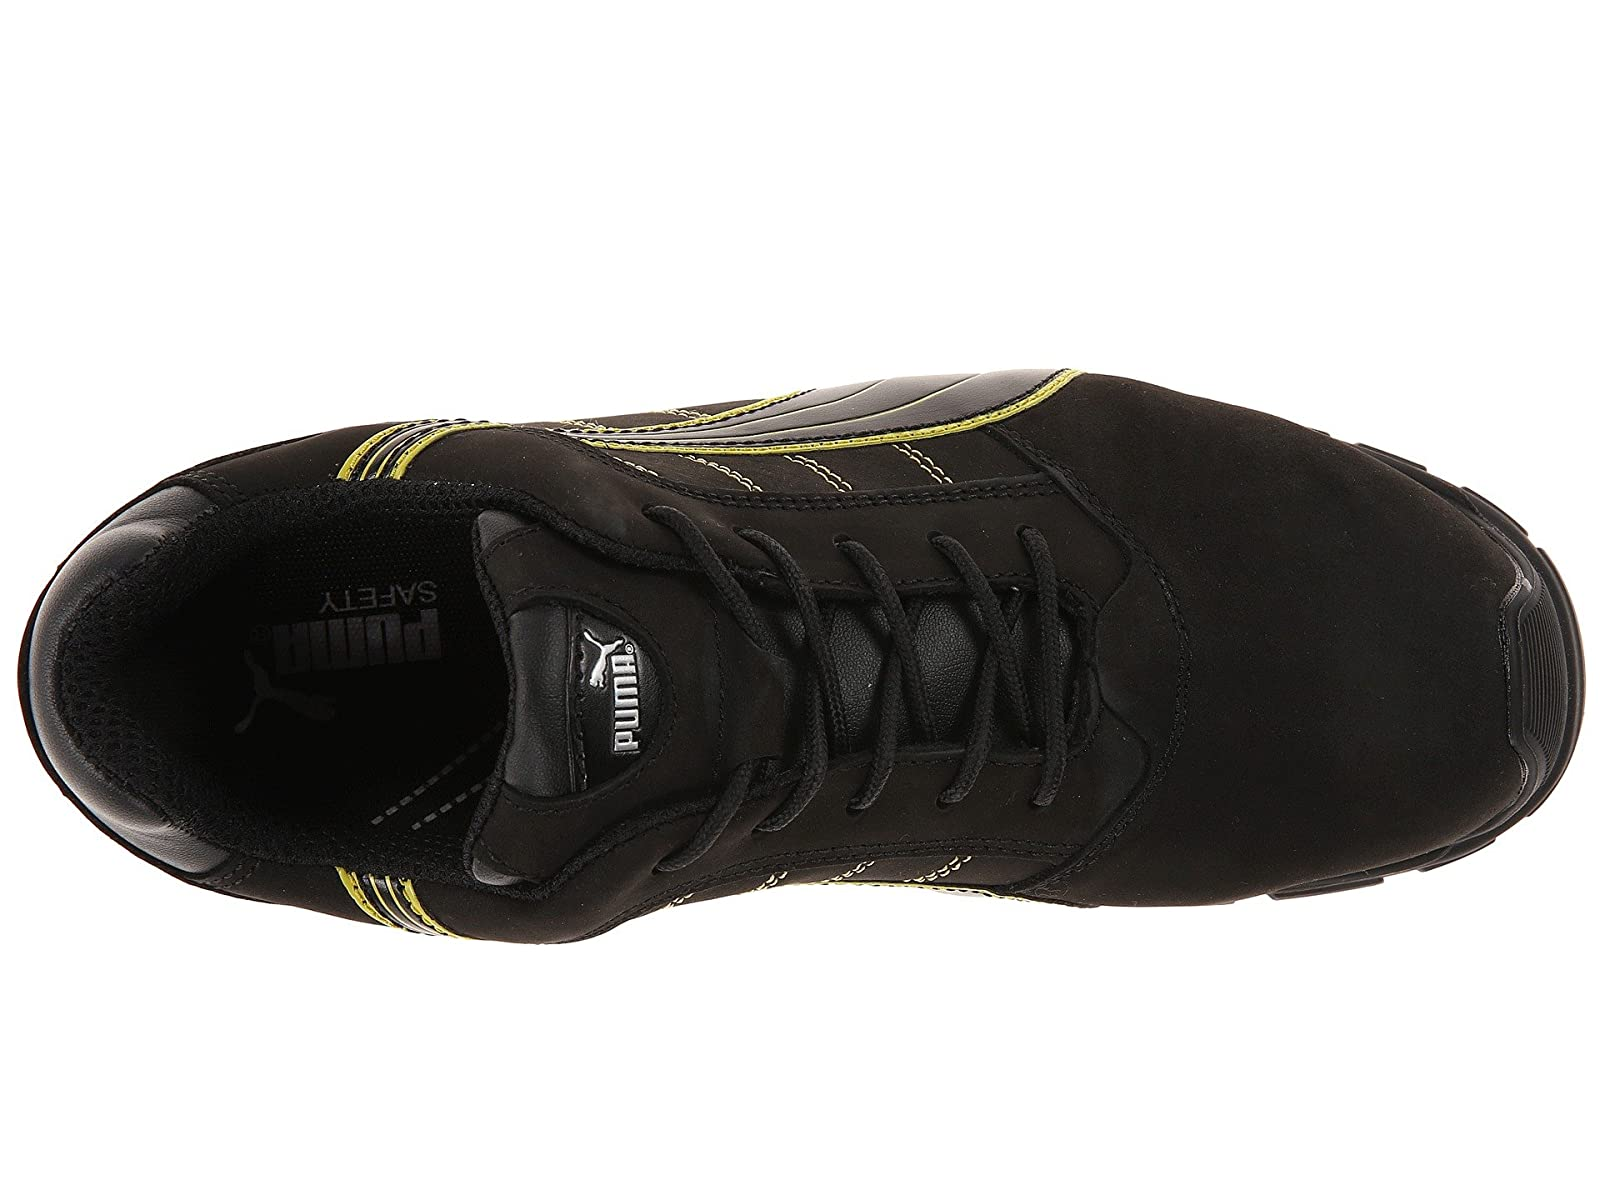 Man-039-s-Sneakers-amp-Athletic-Shoes-PUMA-Safety-Metro-Amsterdam-SD thumbnail 3